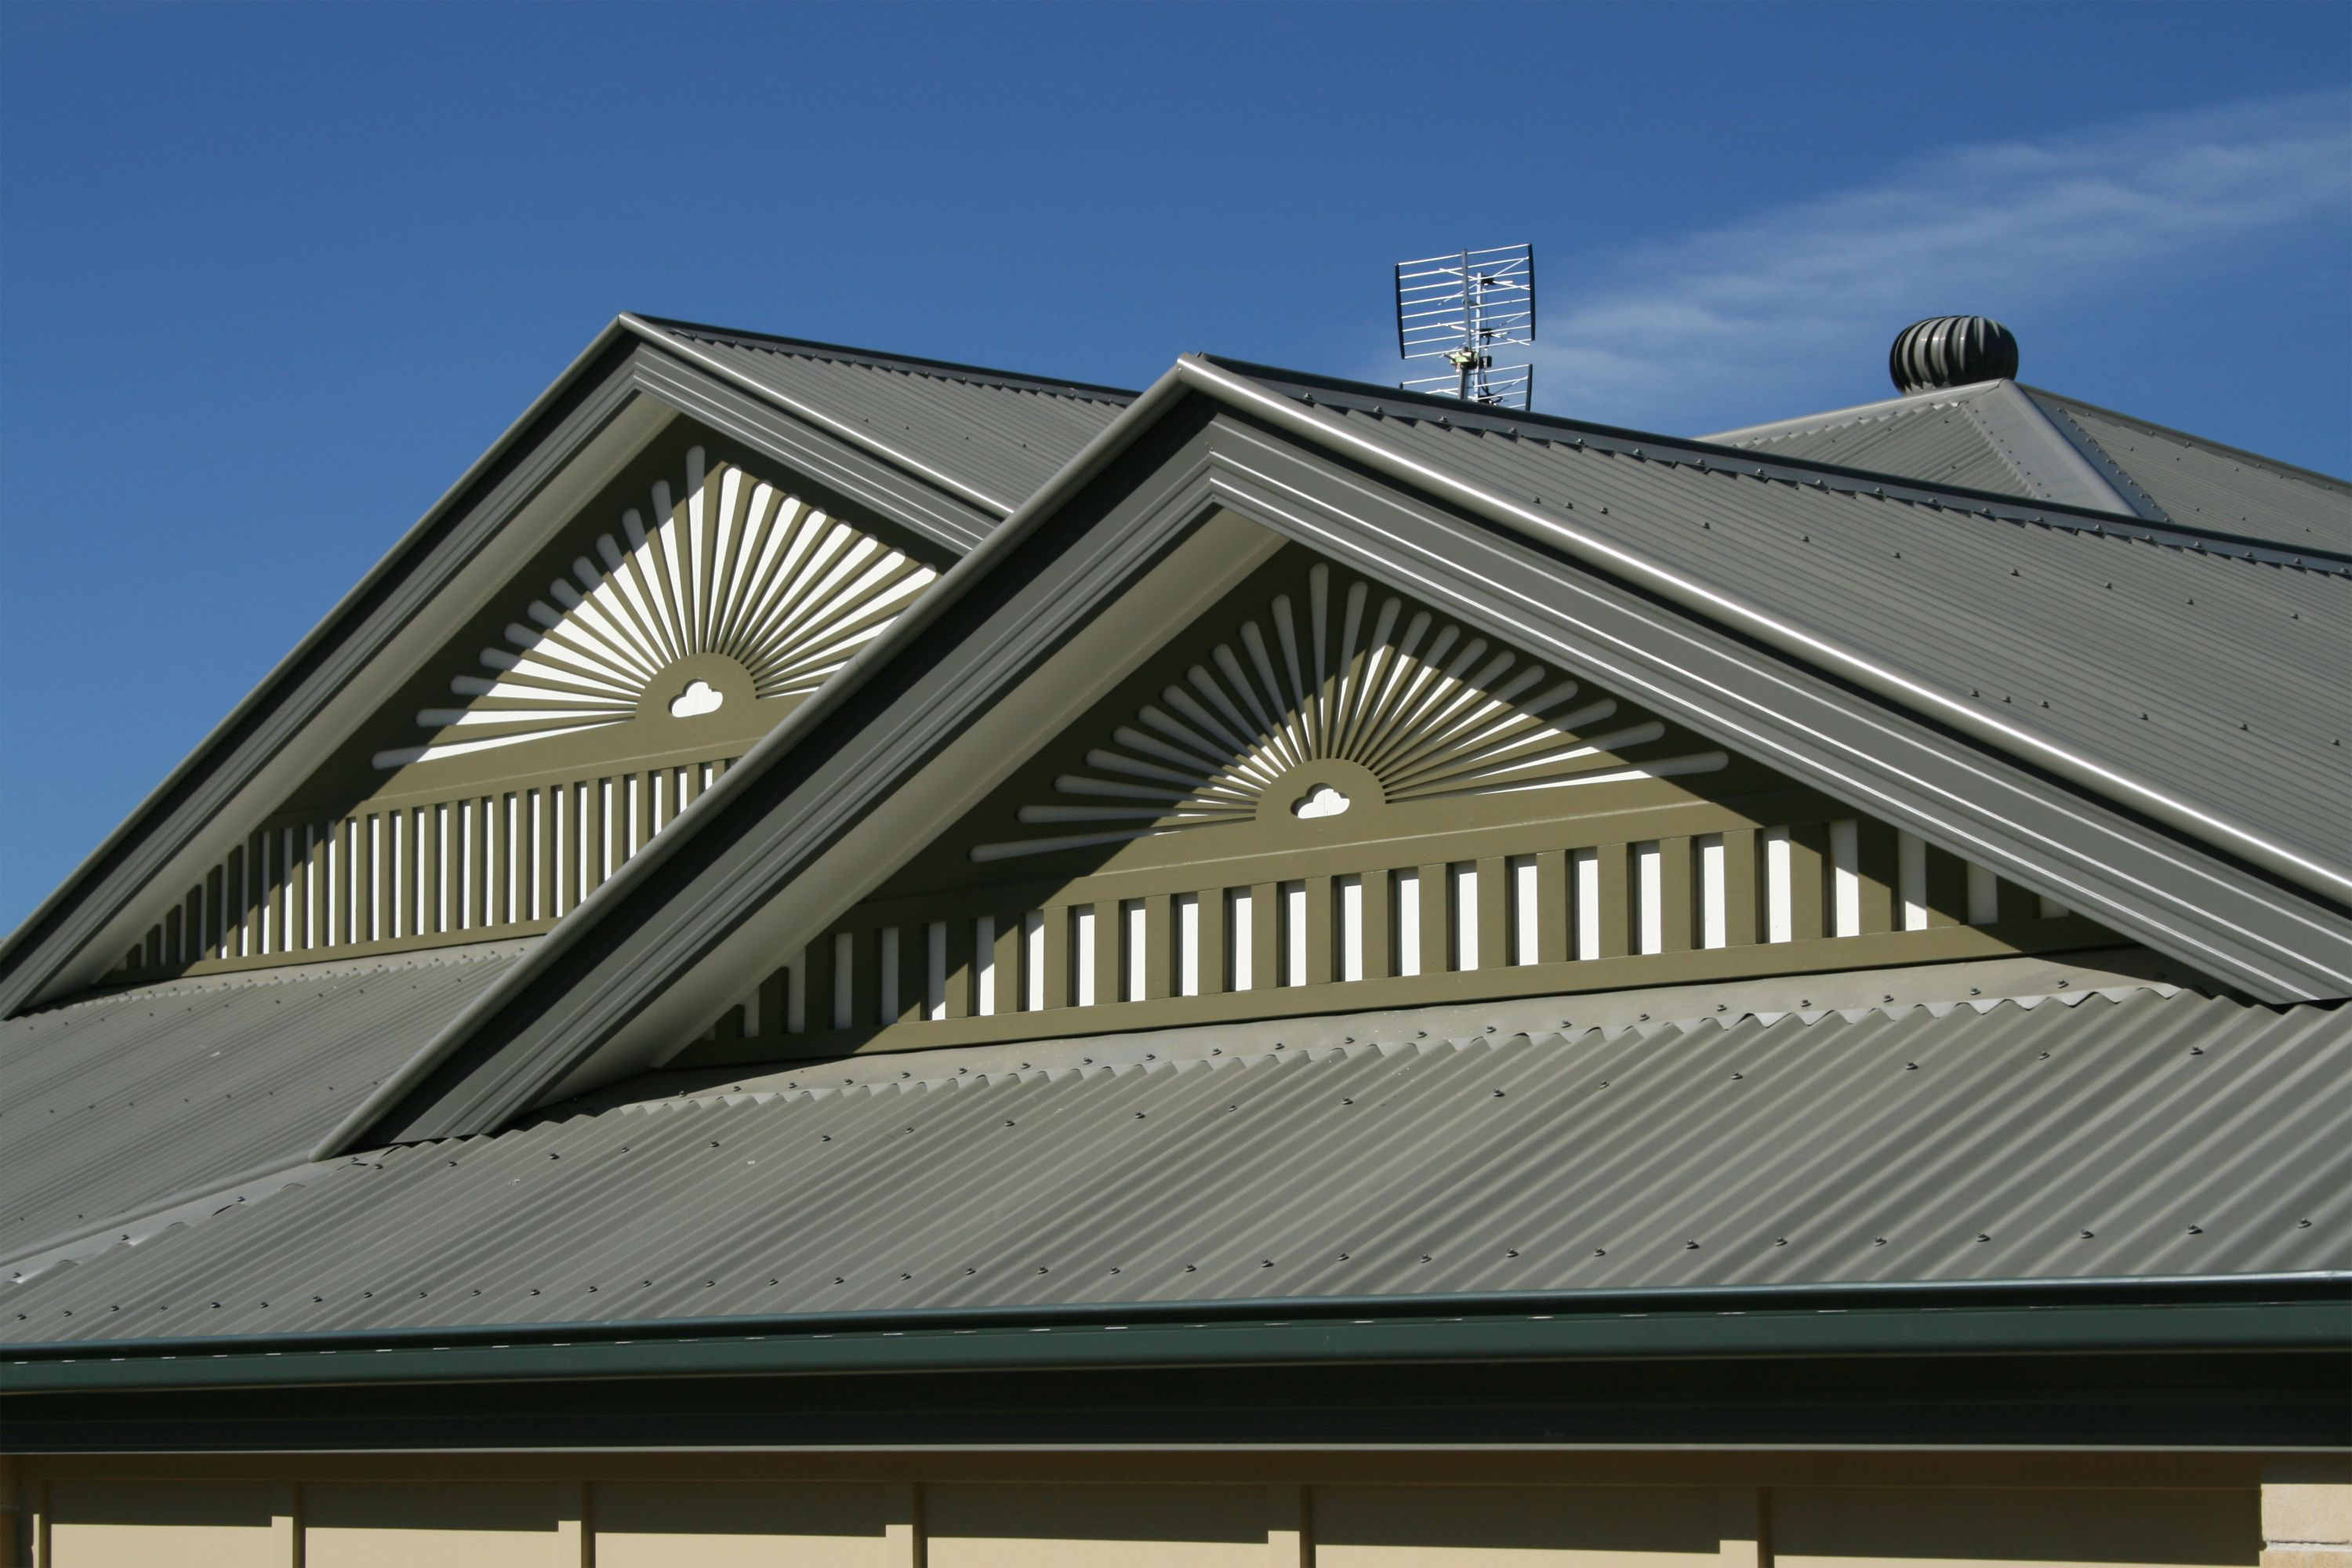 The Merits And Drawbacks Of Metal Roofs Fibreglass Roof Standing Seam Metal Roof Metal Roof